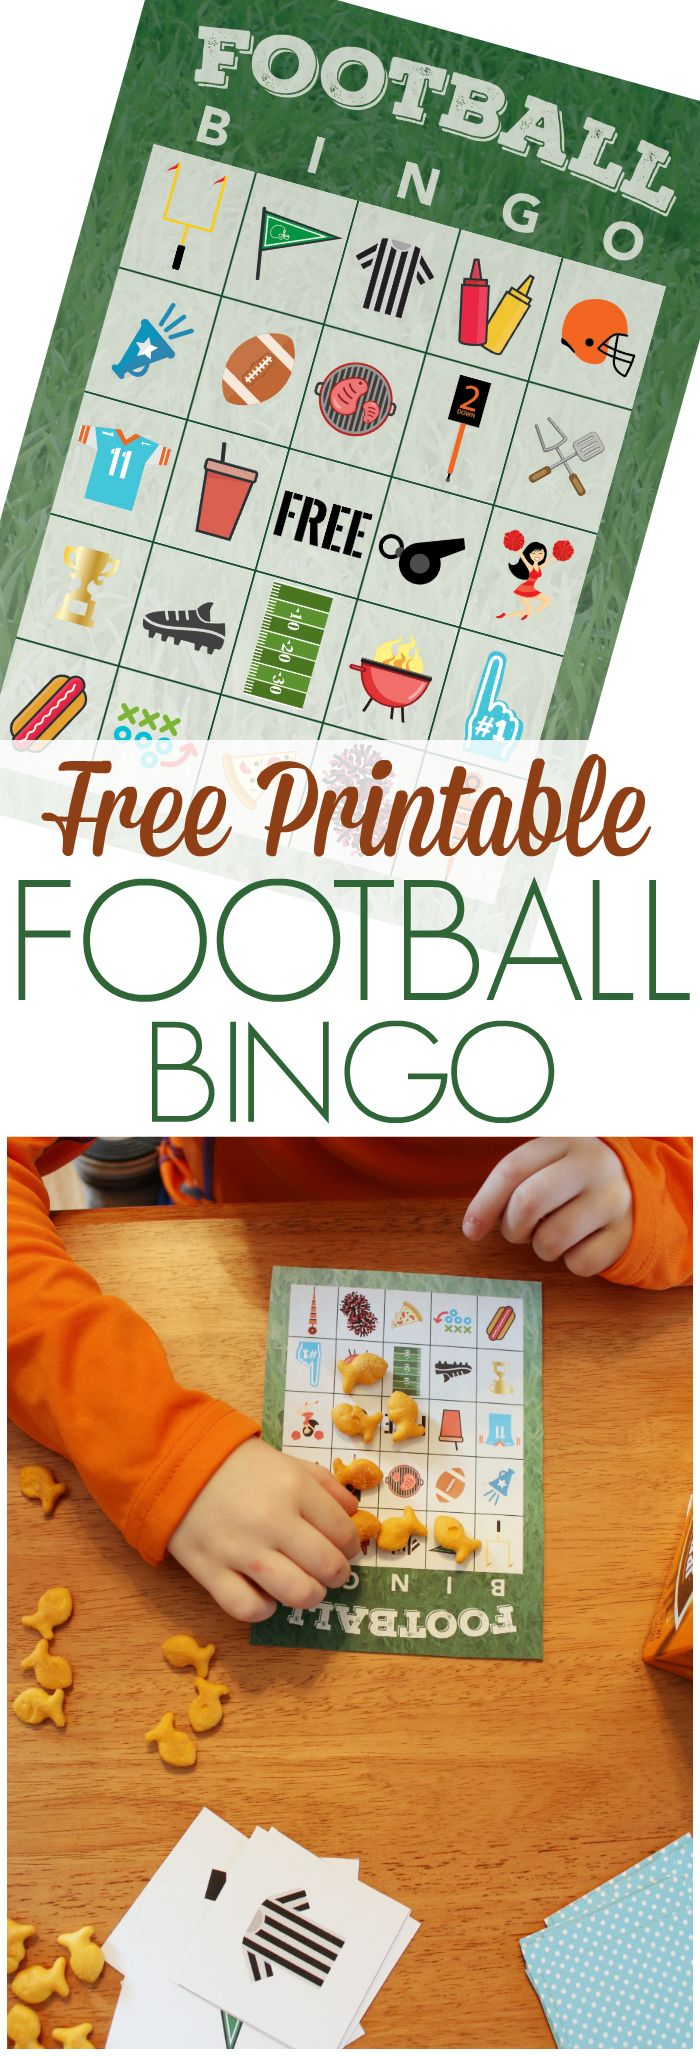 Use this free printable football bingo game to keep the kids entertained during the football game! #GameDayGoldfish @target AD